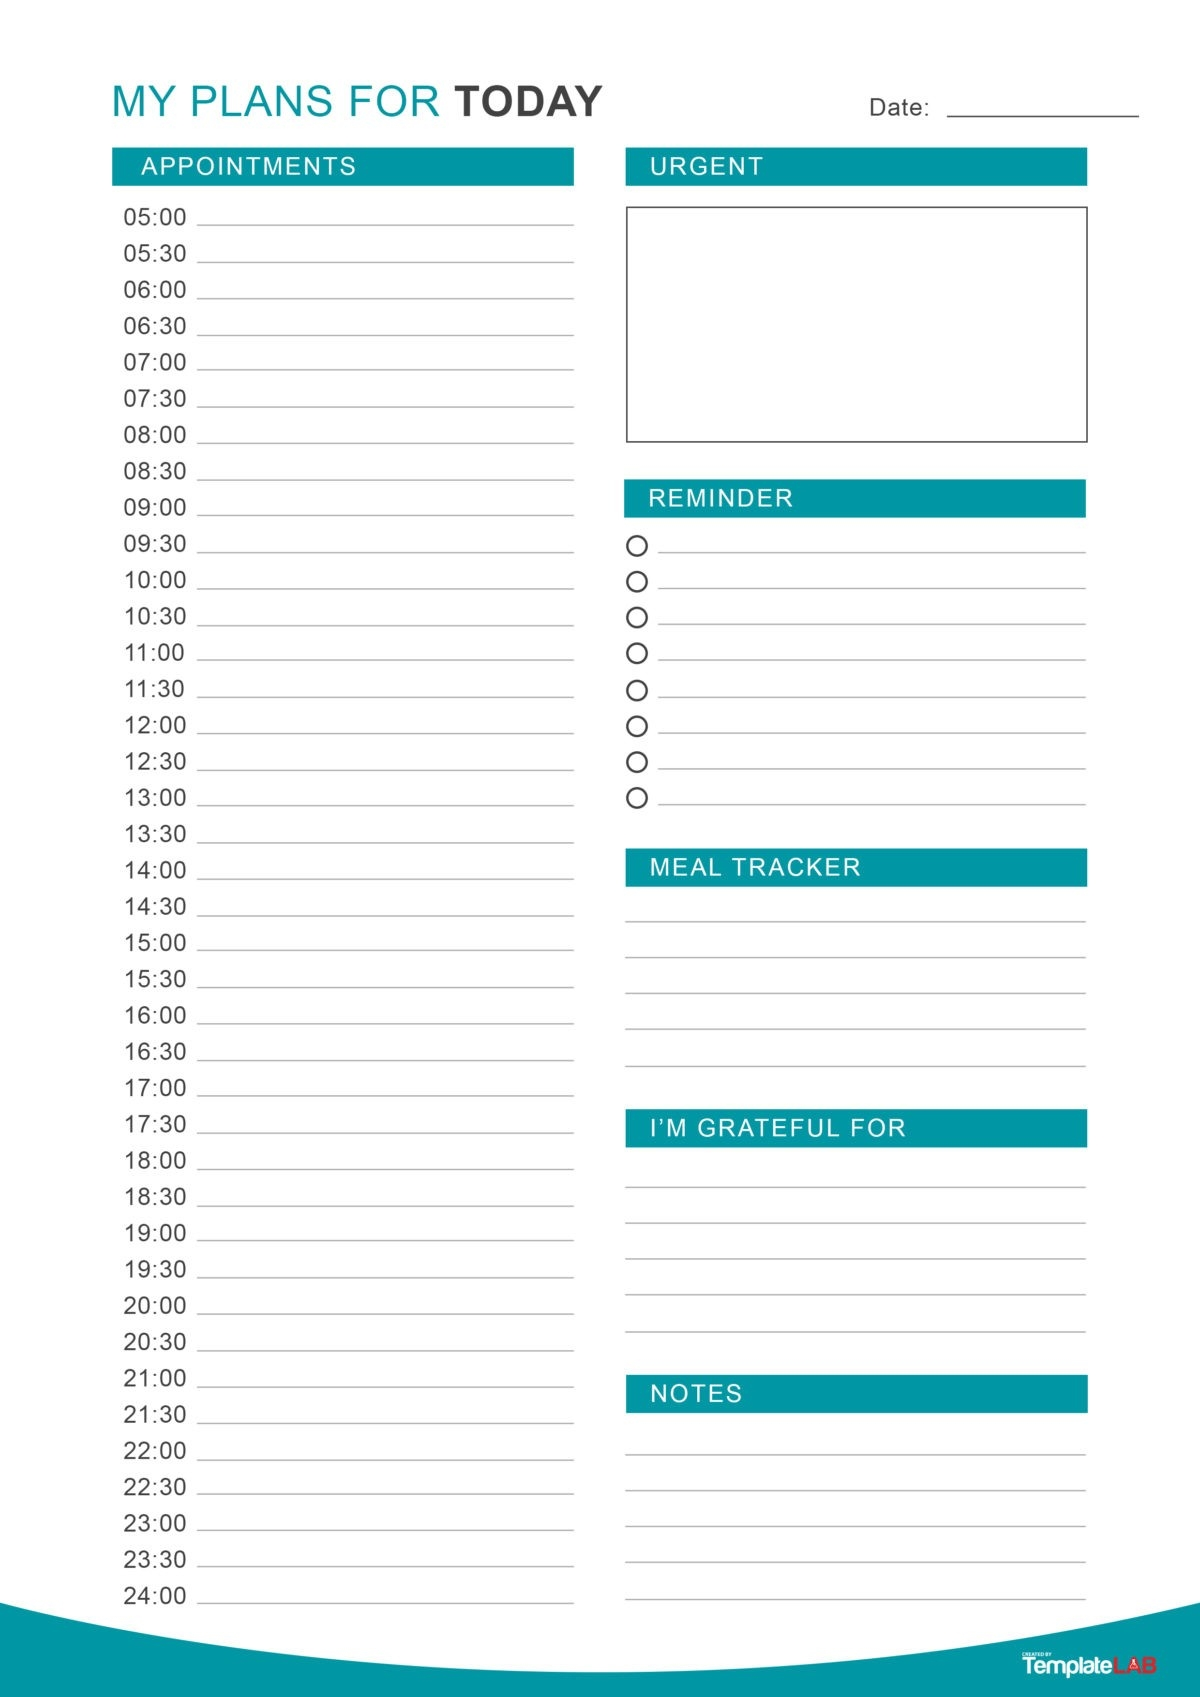 47 Printable Daily Planner Templates (Free In Word/excel/pdf)  Printable Daily Planner With Times